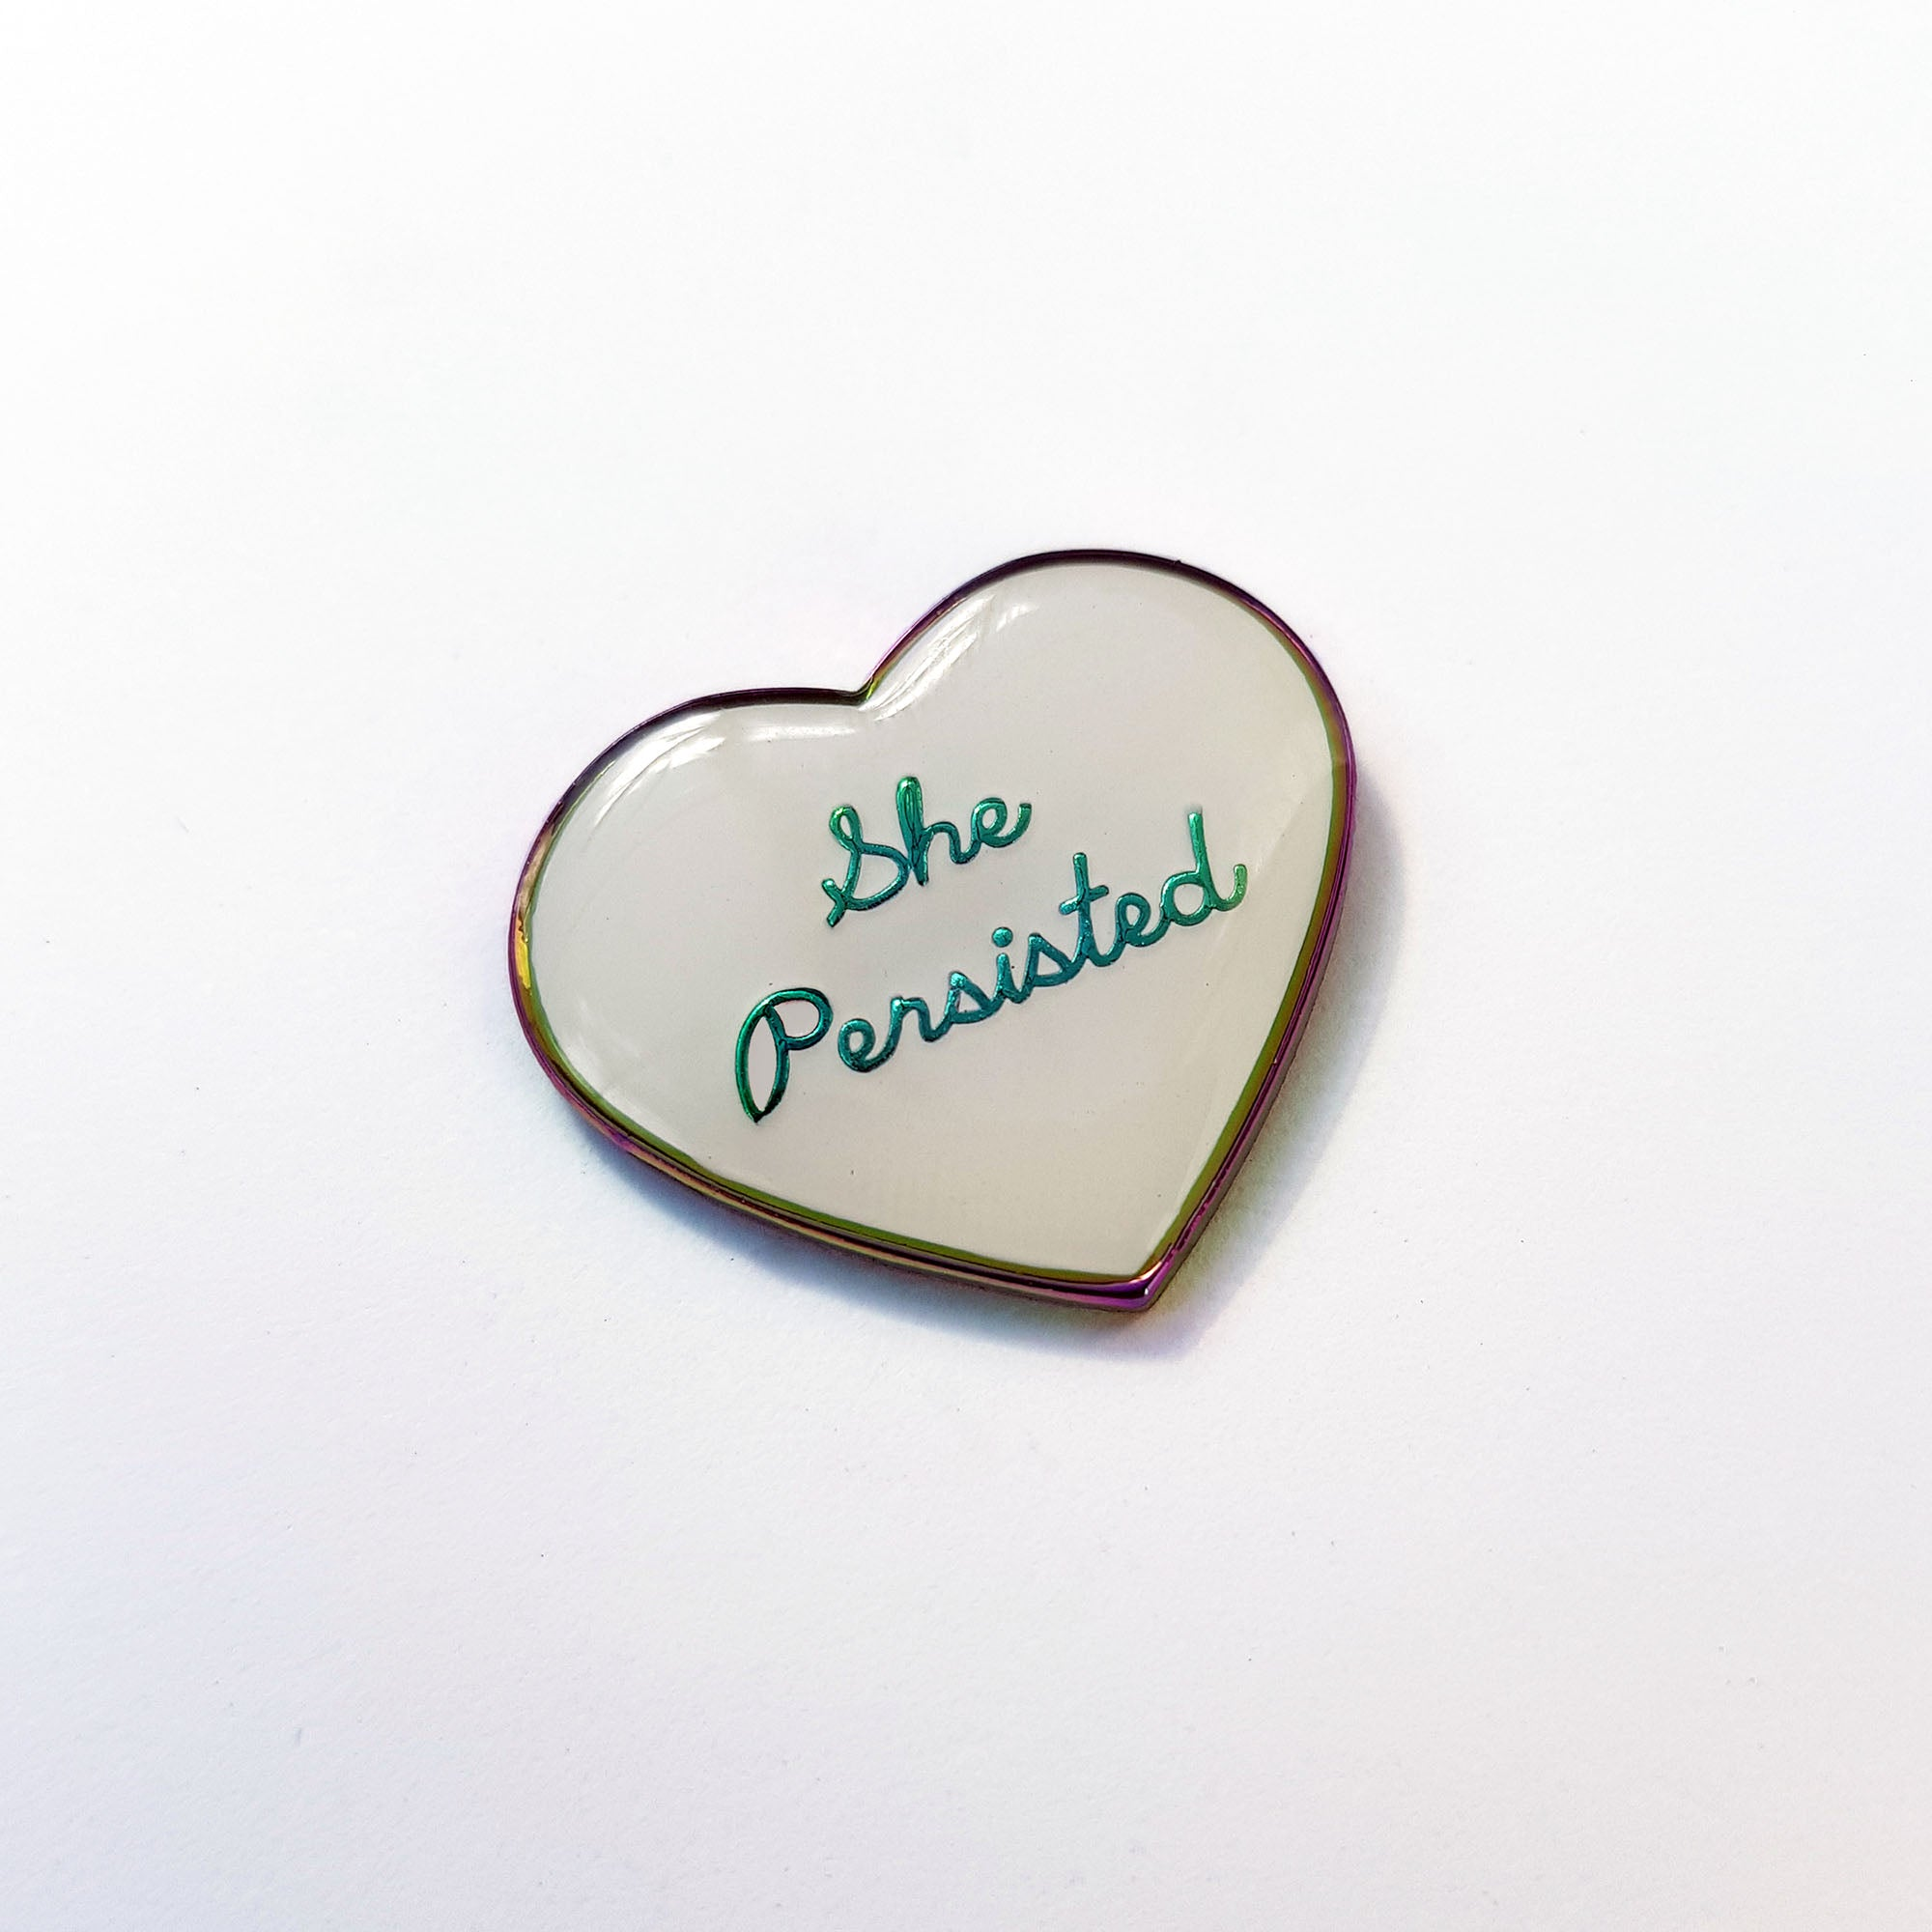 She Persisted: Rainbow Metal Enamel Pin / Brooch